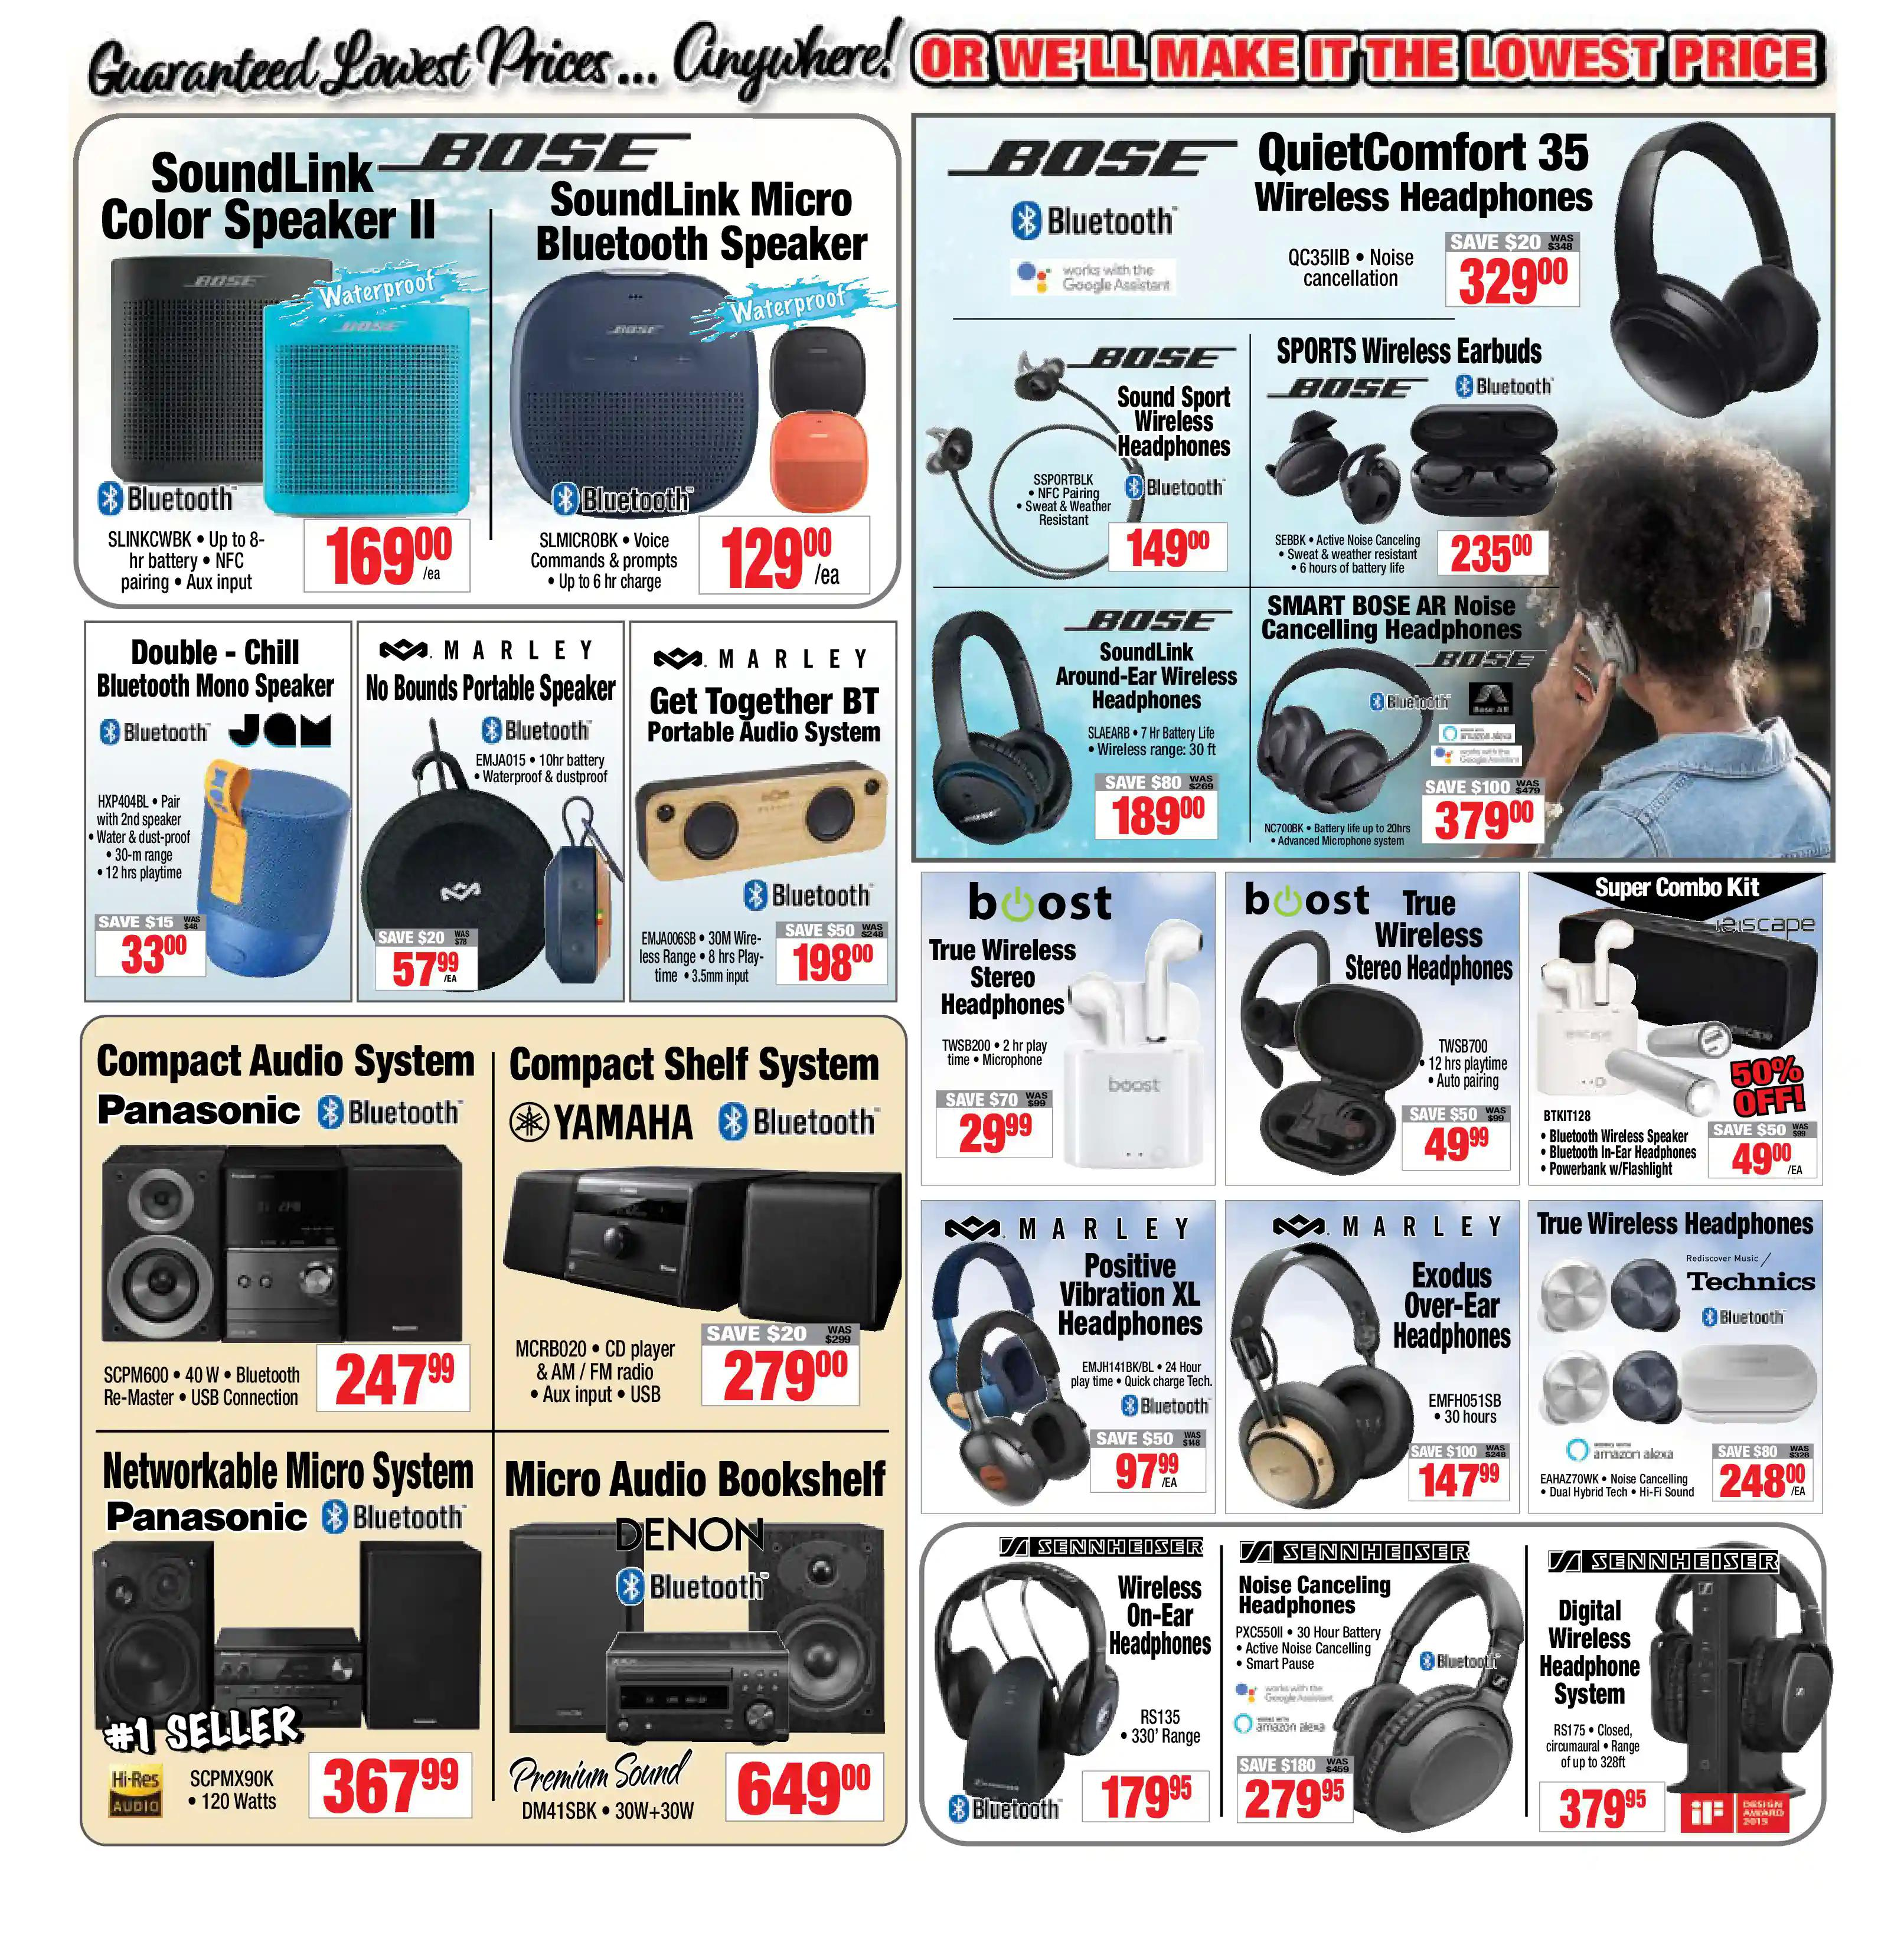 2001 Audio Video - Weekly Flyer Specials - Page 6